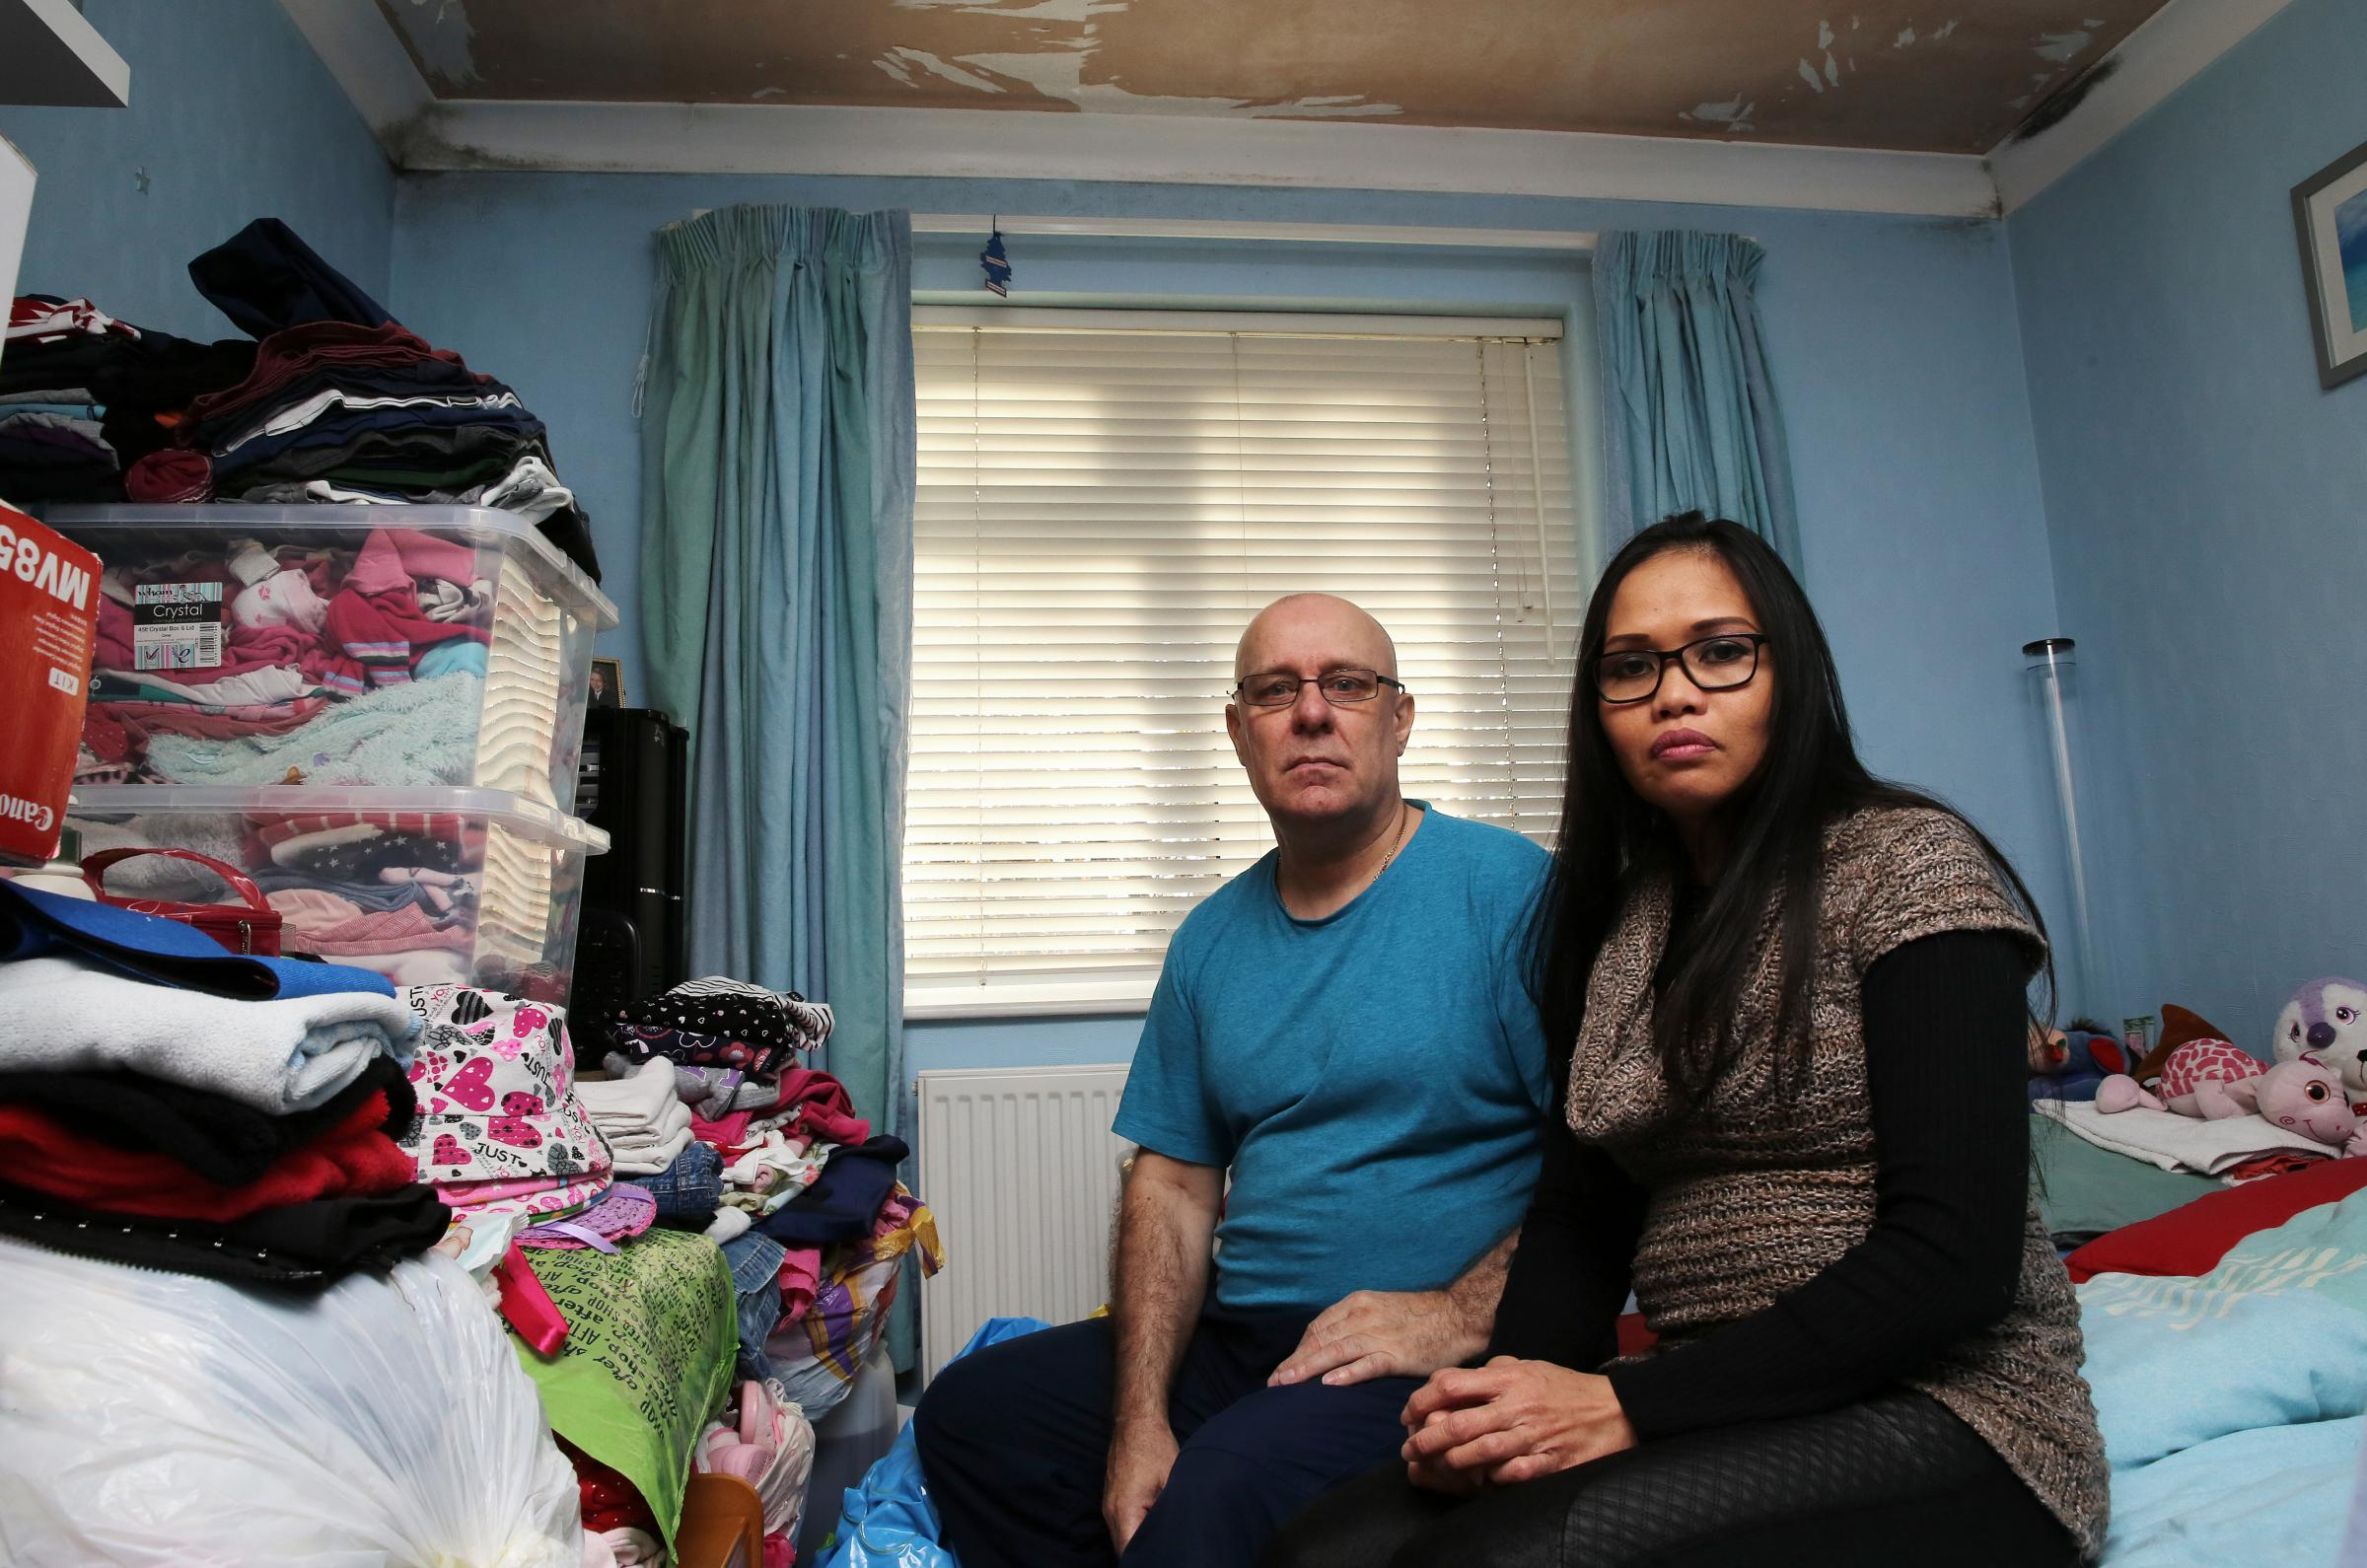 Neil Reed and wife Rosario in their cramped flat